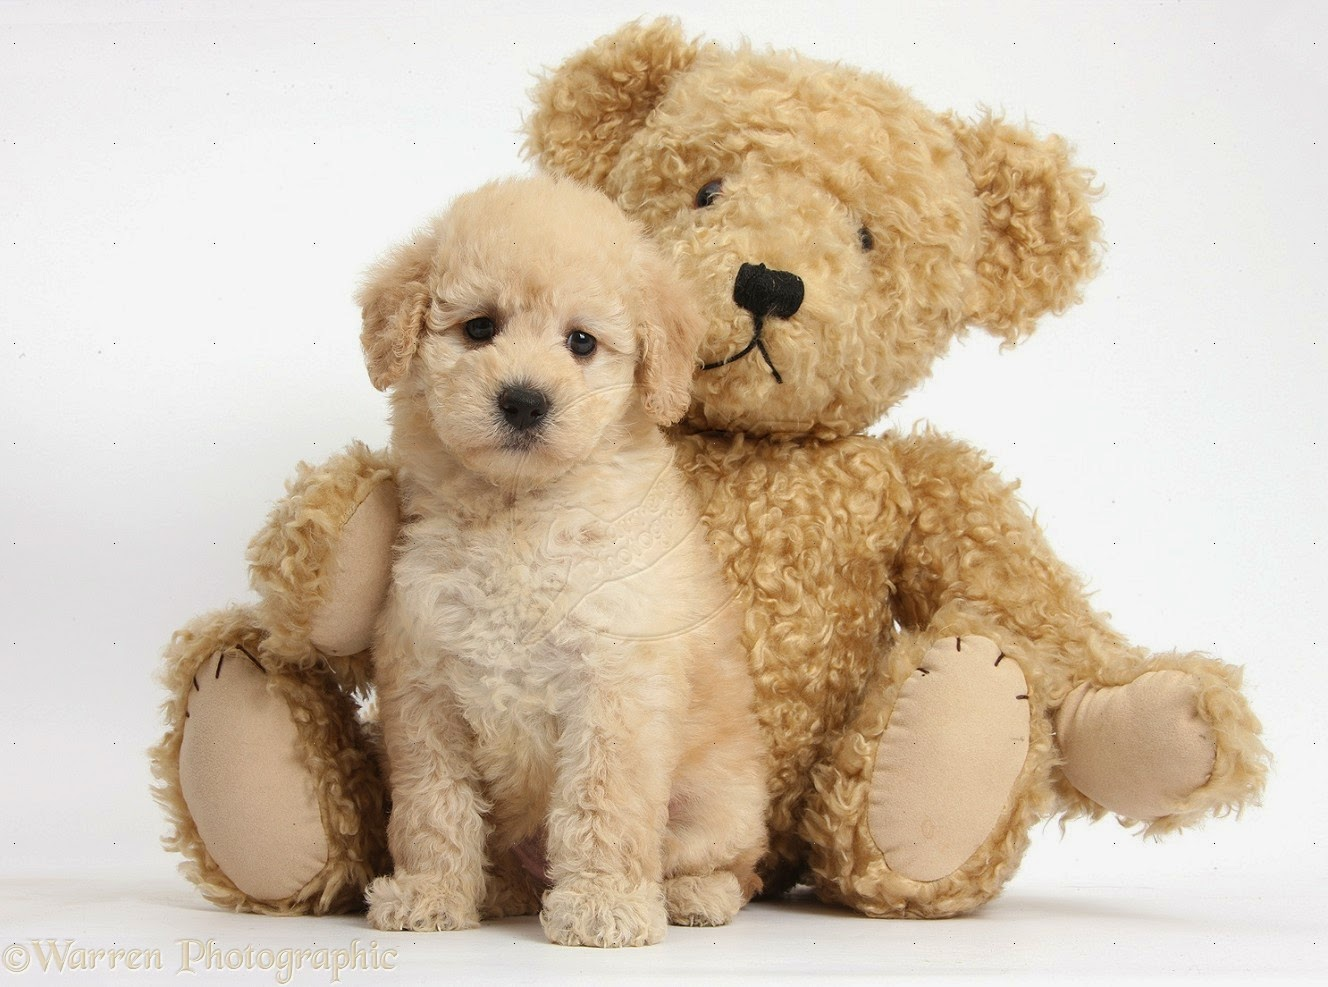 Teddy bear adult dogs teddy bear puppies